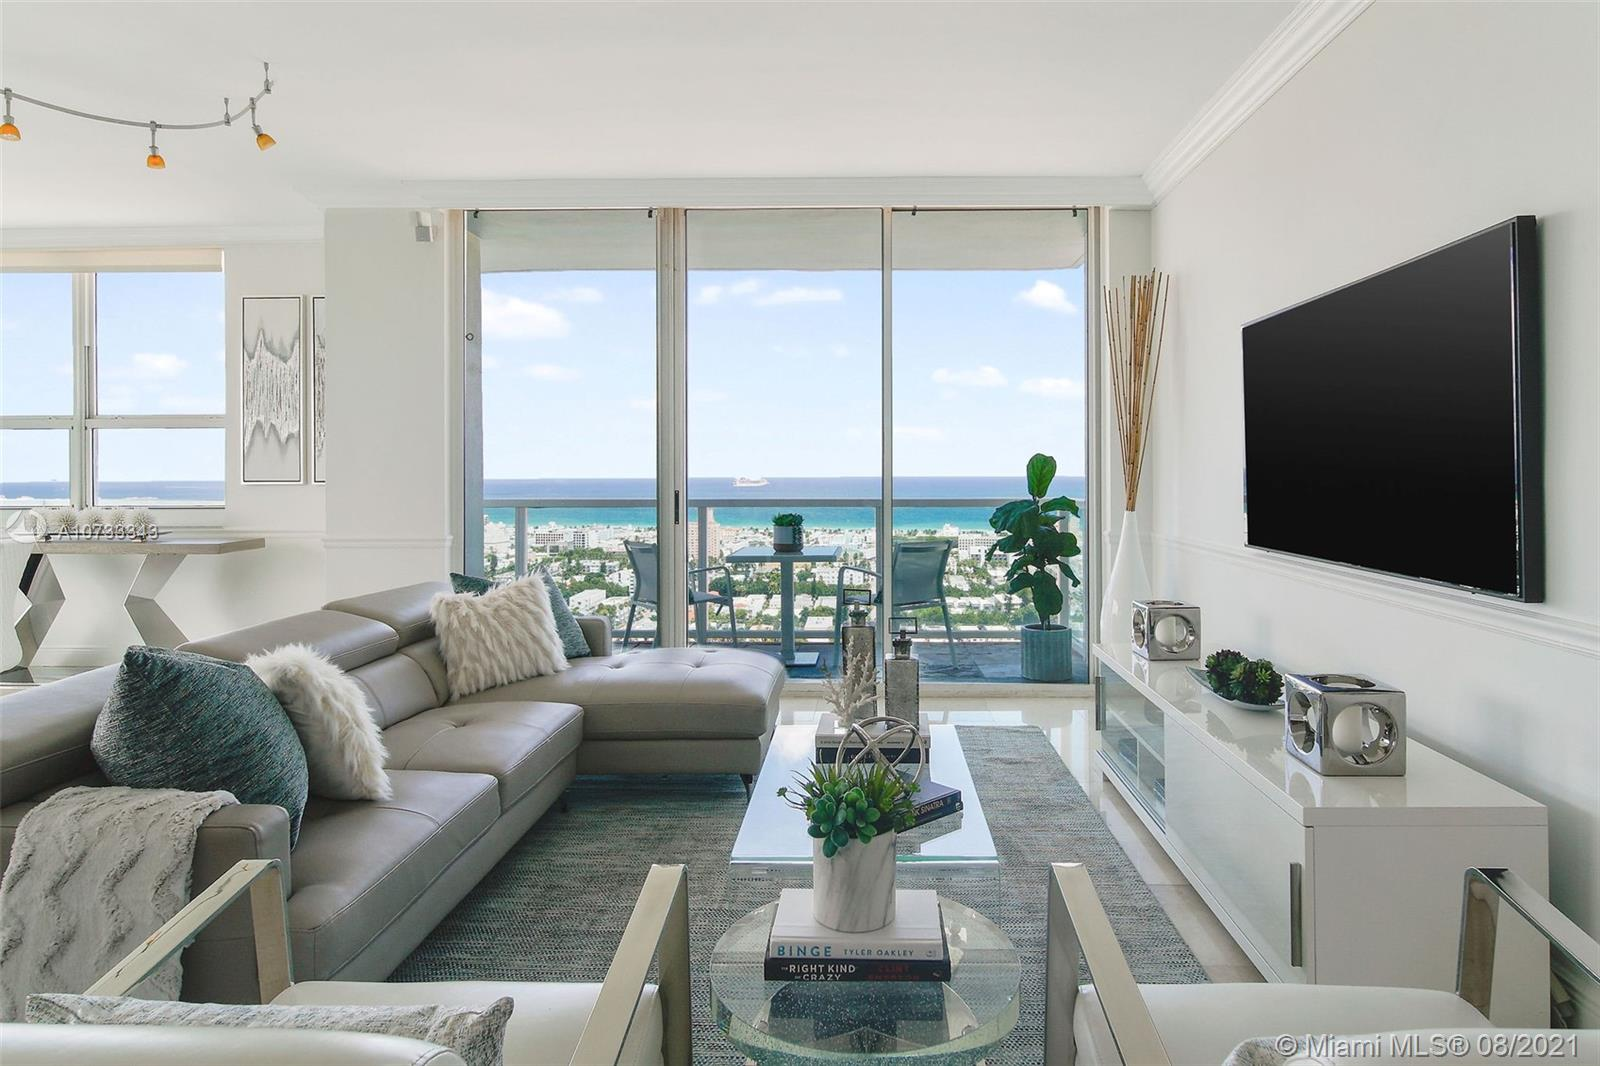 Large CORNER Penthouse in South Beach.  Rarely available PH unit in the building with higher ceilings and multiple balconies.  Expansive views of Ocean AND Bay.  2 Bed/2.5 Bath.  1700SqFt total with TWO balconies.  Renovated with marble and wood flooring.  Open gourmet kitchen.  Enjoy luxury amenities:  two bayfront pools, tennis, poolside food/beverage, concierge, gym, onsite gourmet market, etc.  The West Ave neighborhood offers many choices for dining and shopping at your doorstep.  Shoppes at West Ave, walk to Whole Foods AND Publix, and numerous restaurants, etc.  Easy access to I-195 and 5-10 min commute to downtown Miami.  Two assigned/covered parking spaces.  Tenant occupied.  Tenant may stay or go.